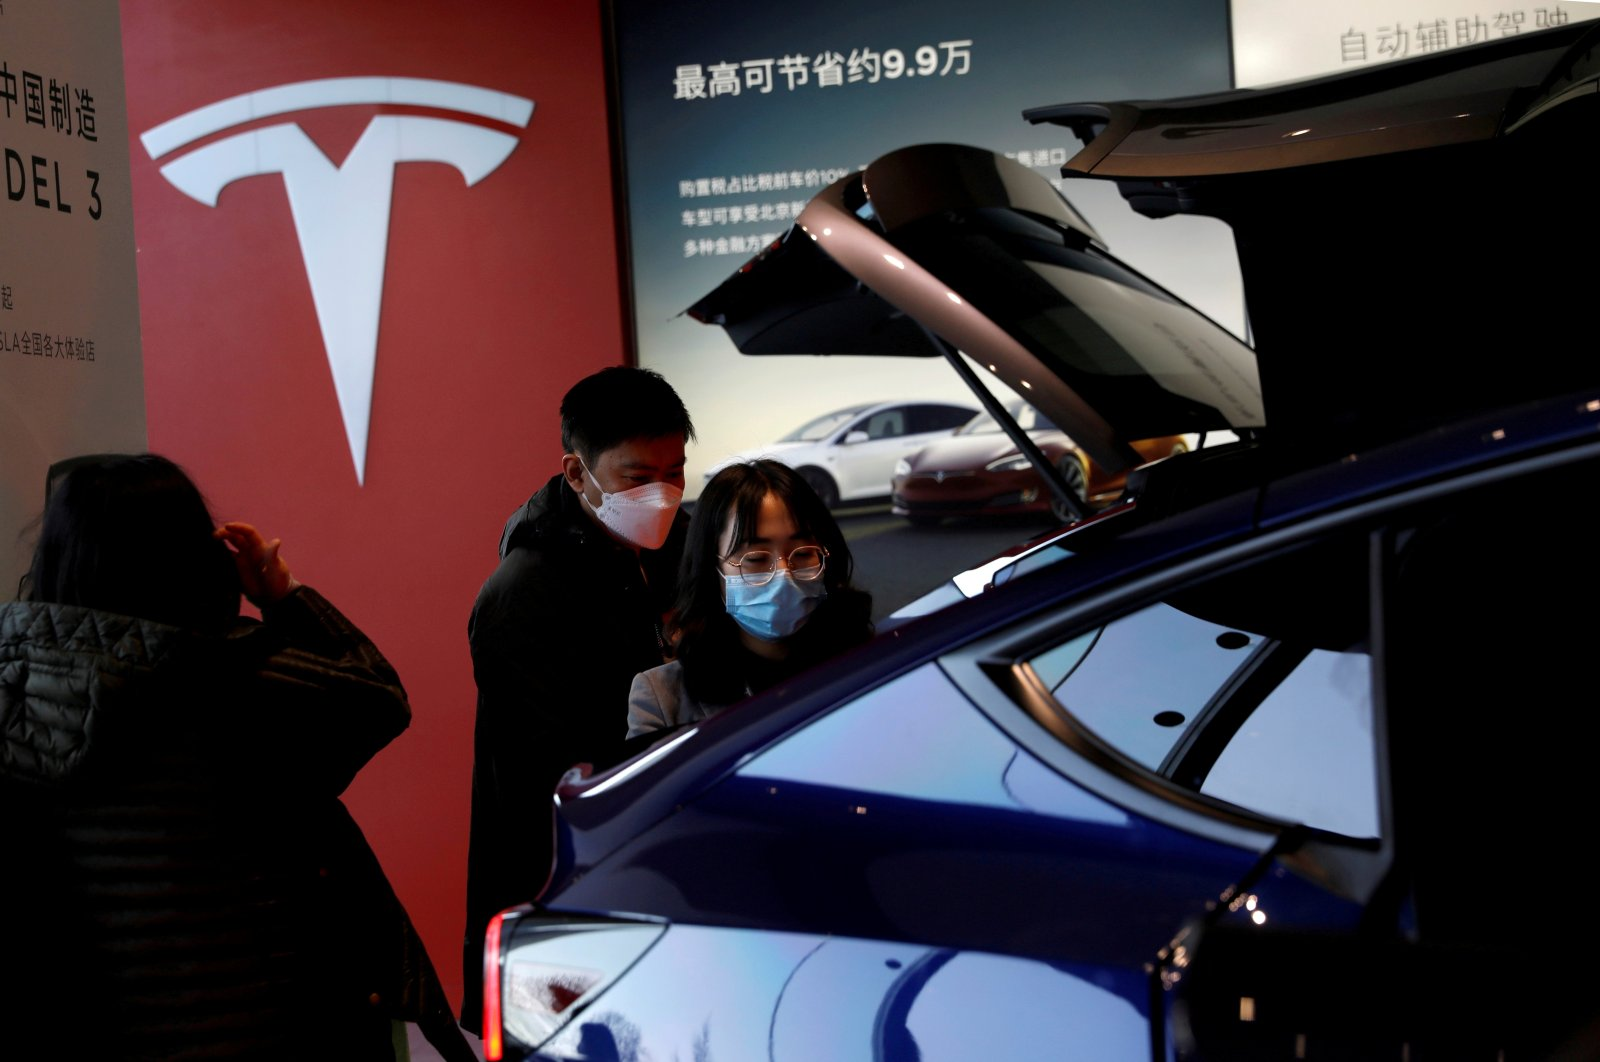 Visitors wearing face masks check a China-made Tesla Model Y sport utility vehicle (SUV) at the electric vehicle maker's showroom in Beijing, China, Jan. 5, 2021. (Reuters Photo)